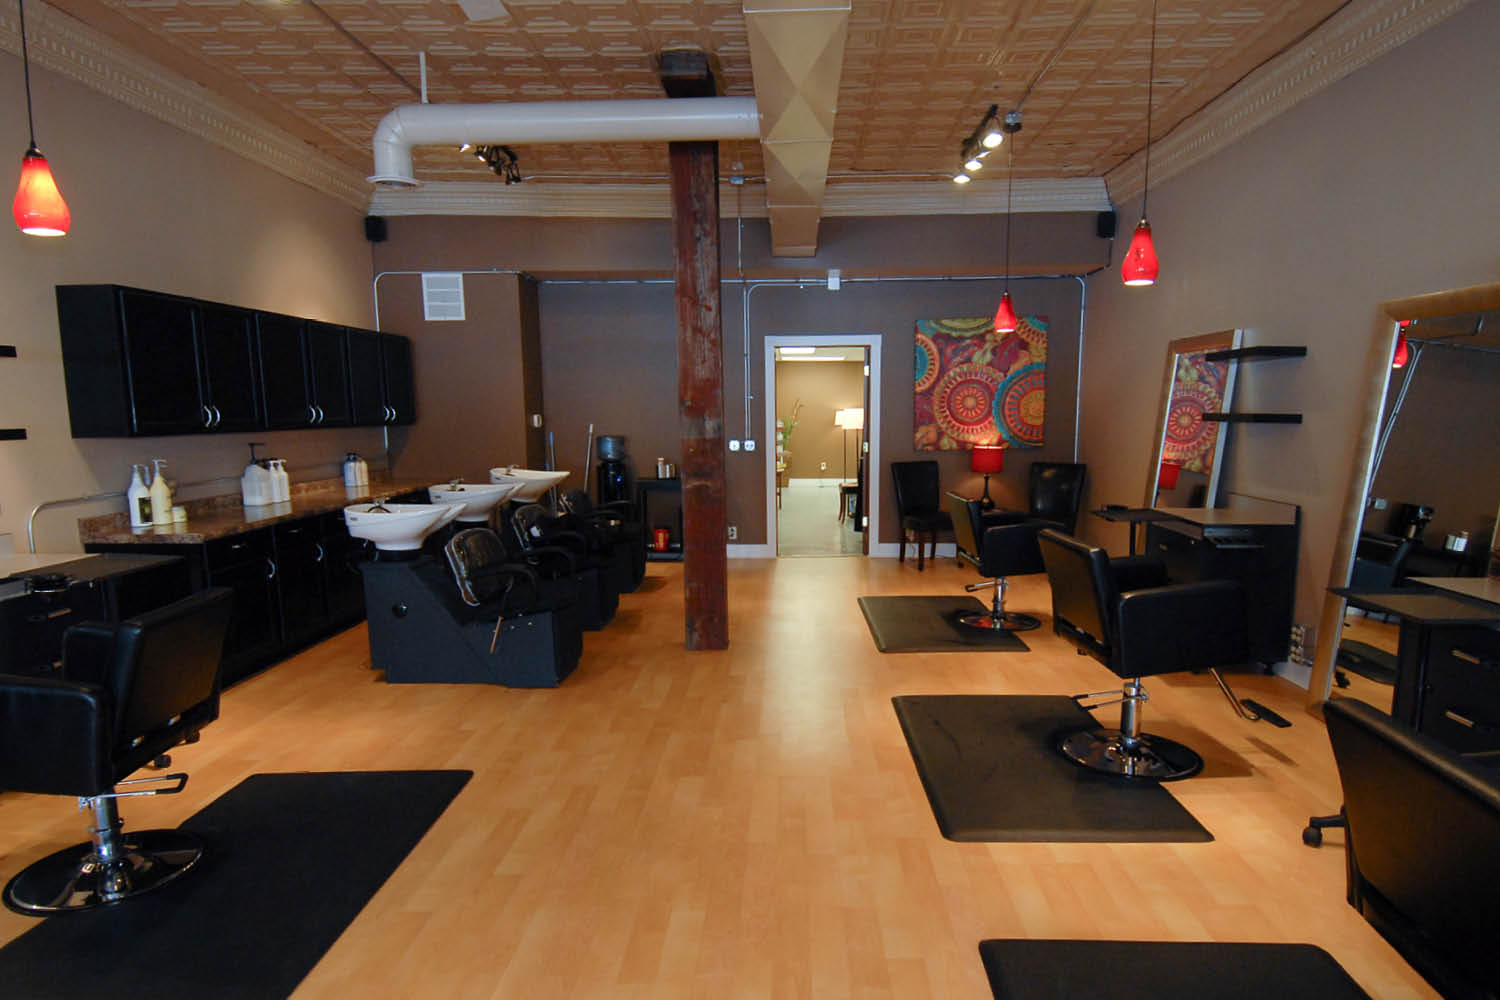 hair stylists stations at eve a salon and spa in Lincoln, NE